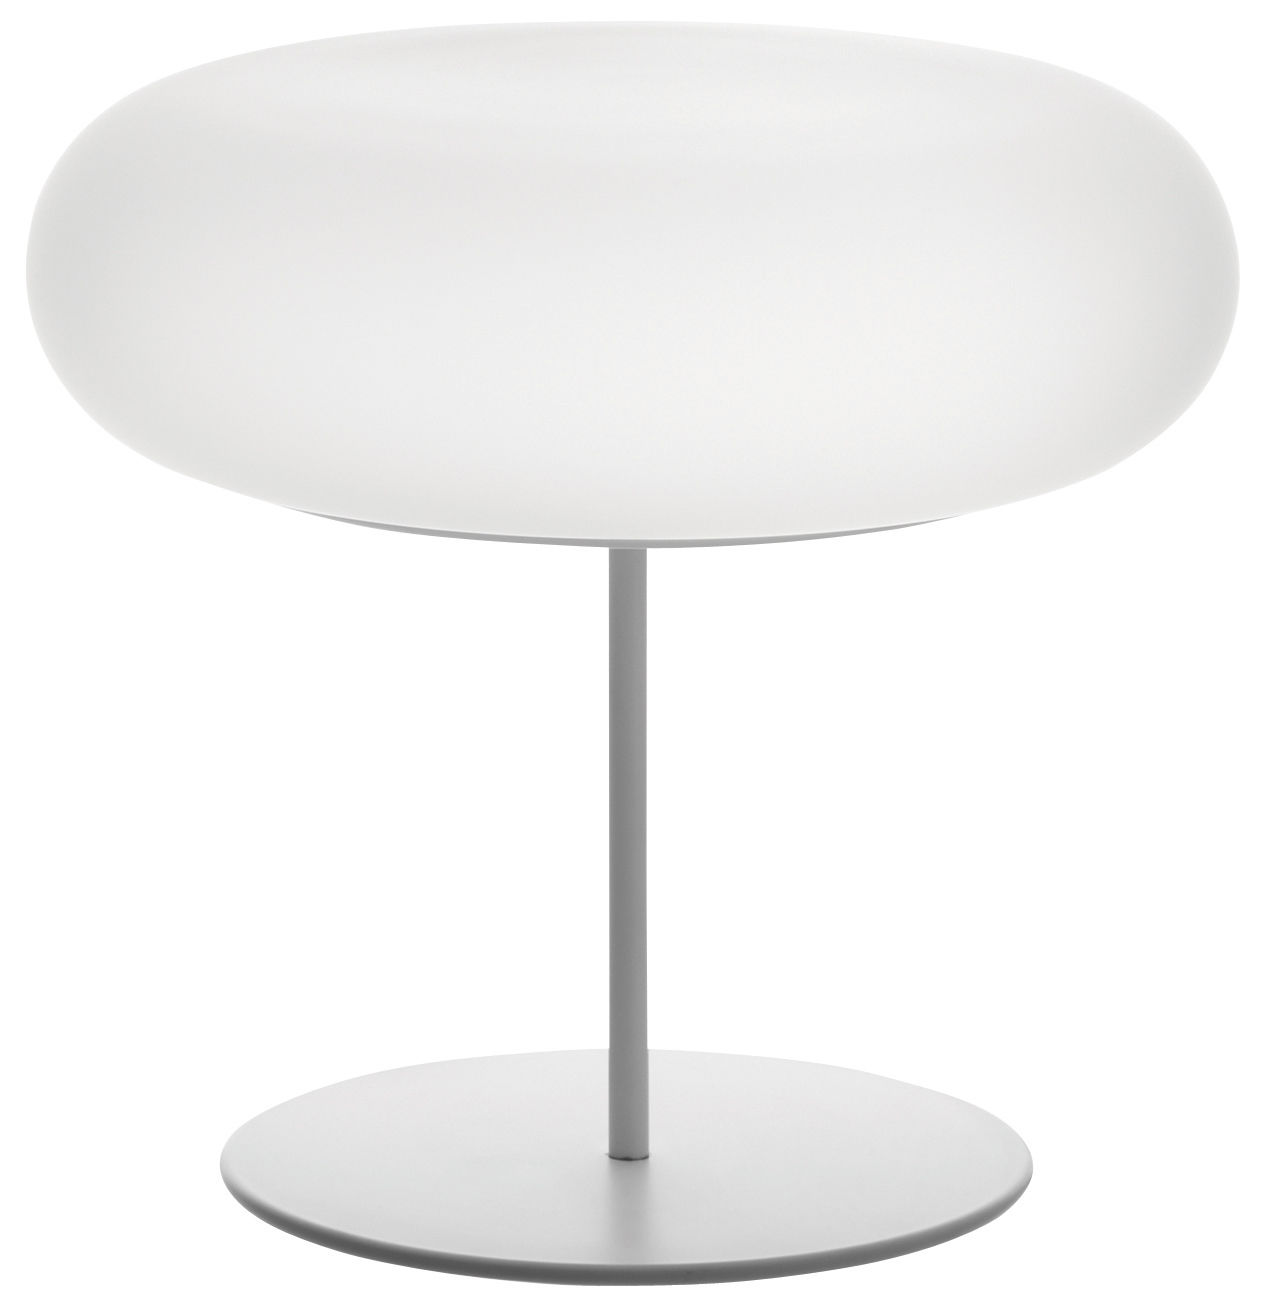 Lighting - Table Lamps - Itka Table lamp by Danese Light - White - Glass, Metal